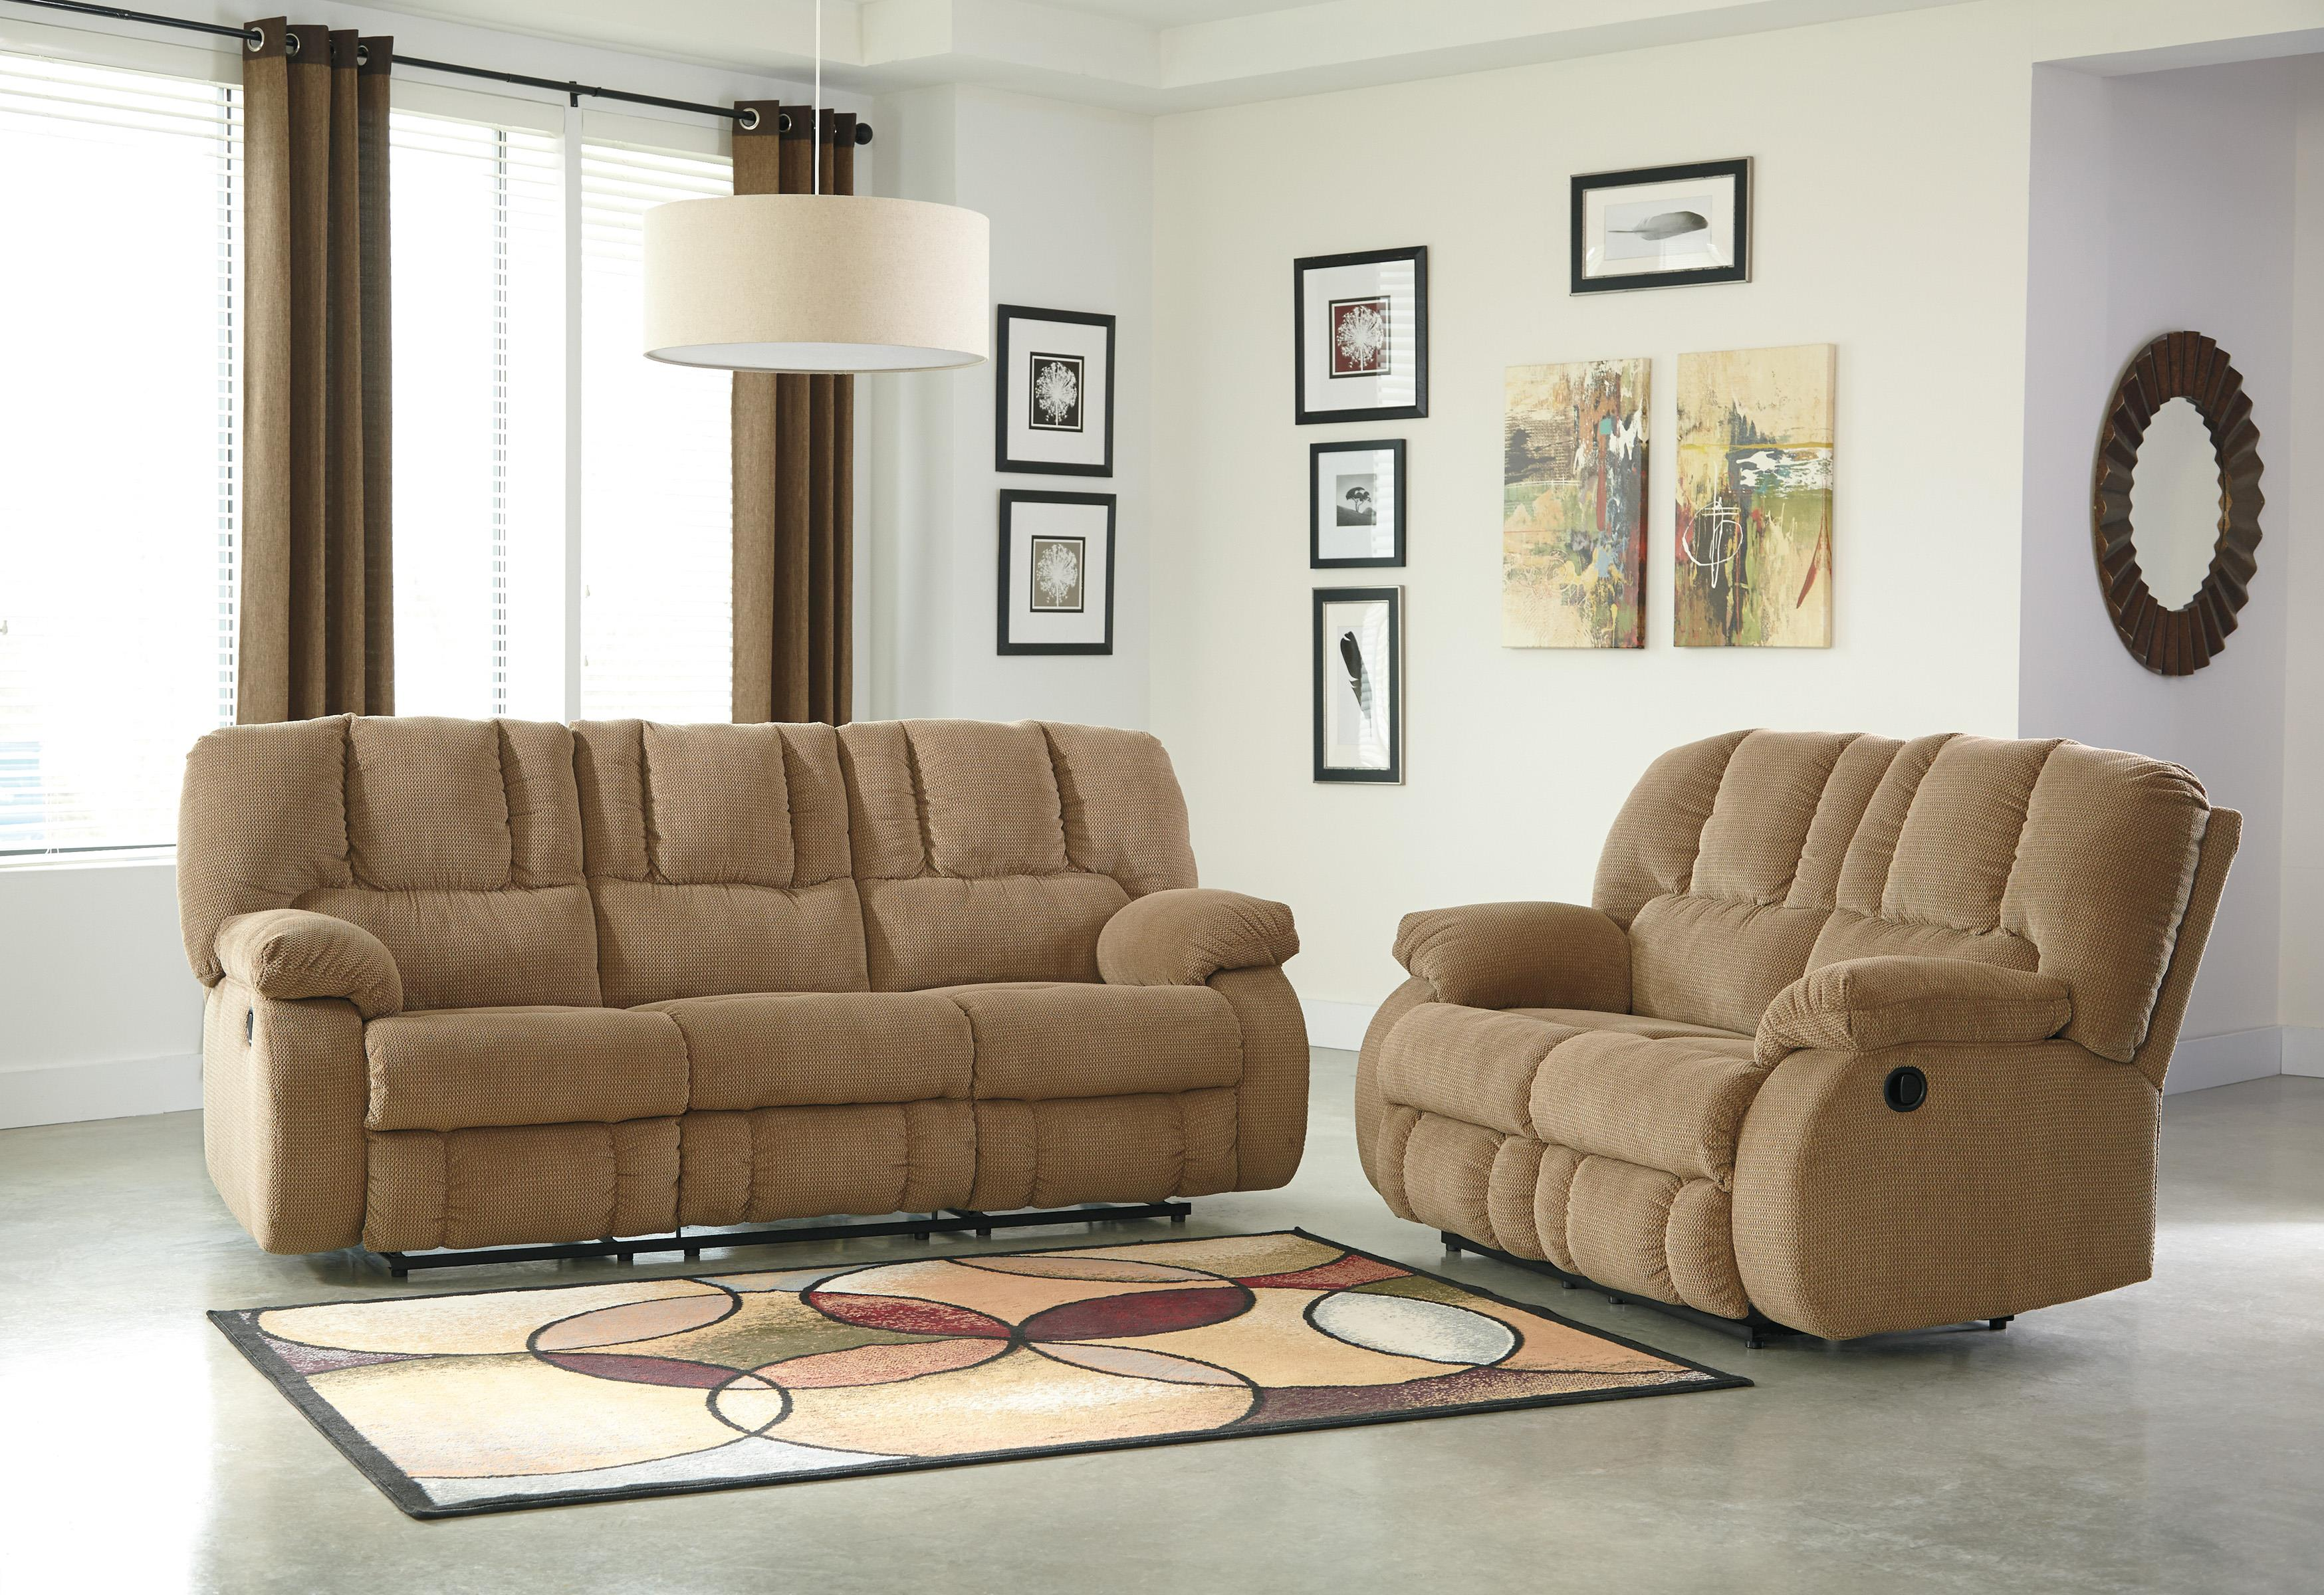 Benchcraft Roan Reclining Living Room Group - Item Number: 38602 Living Room Group 1